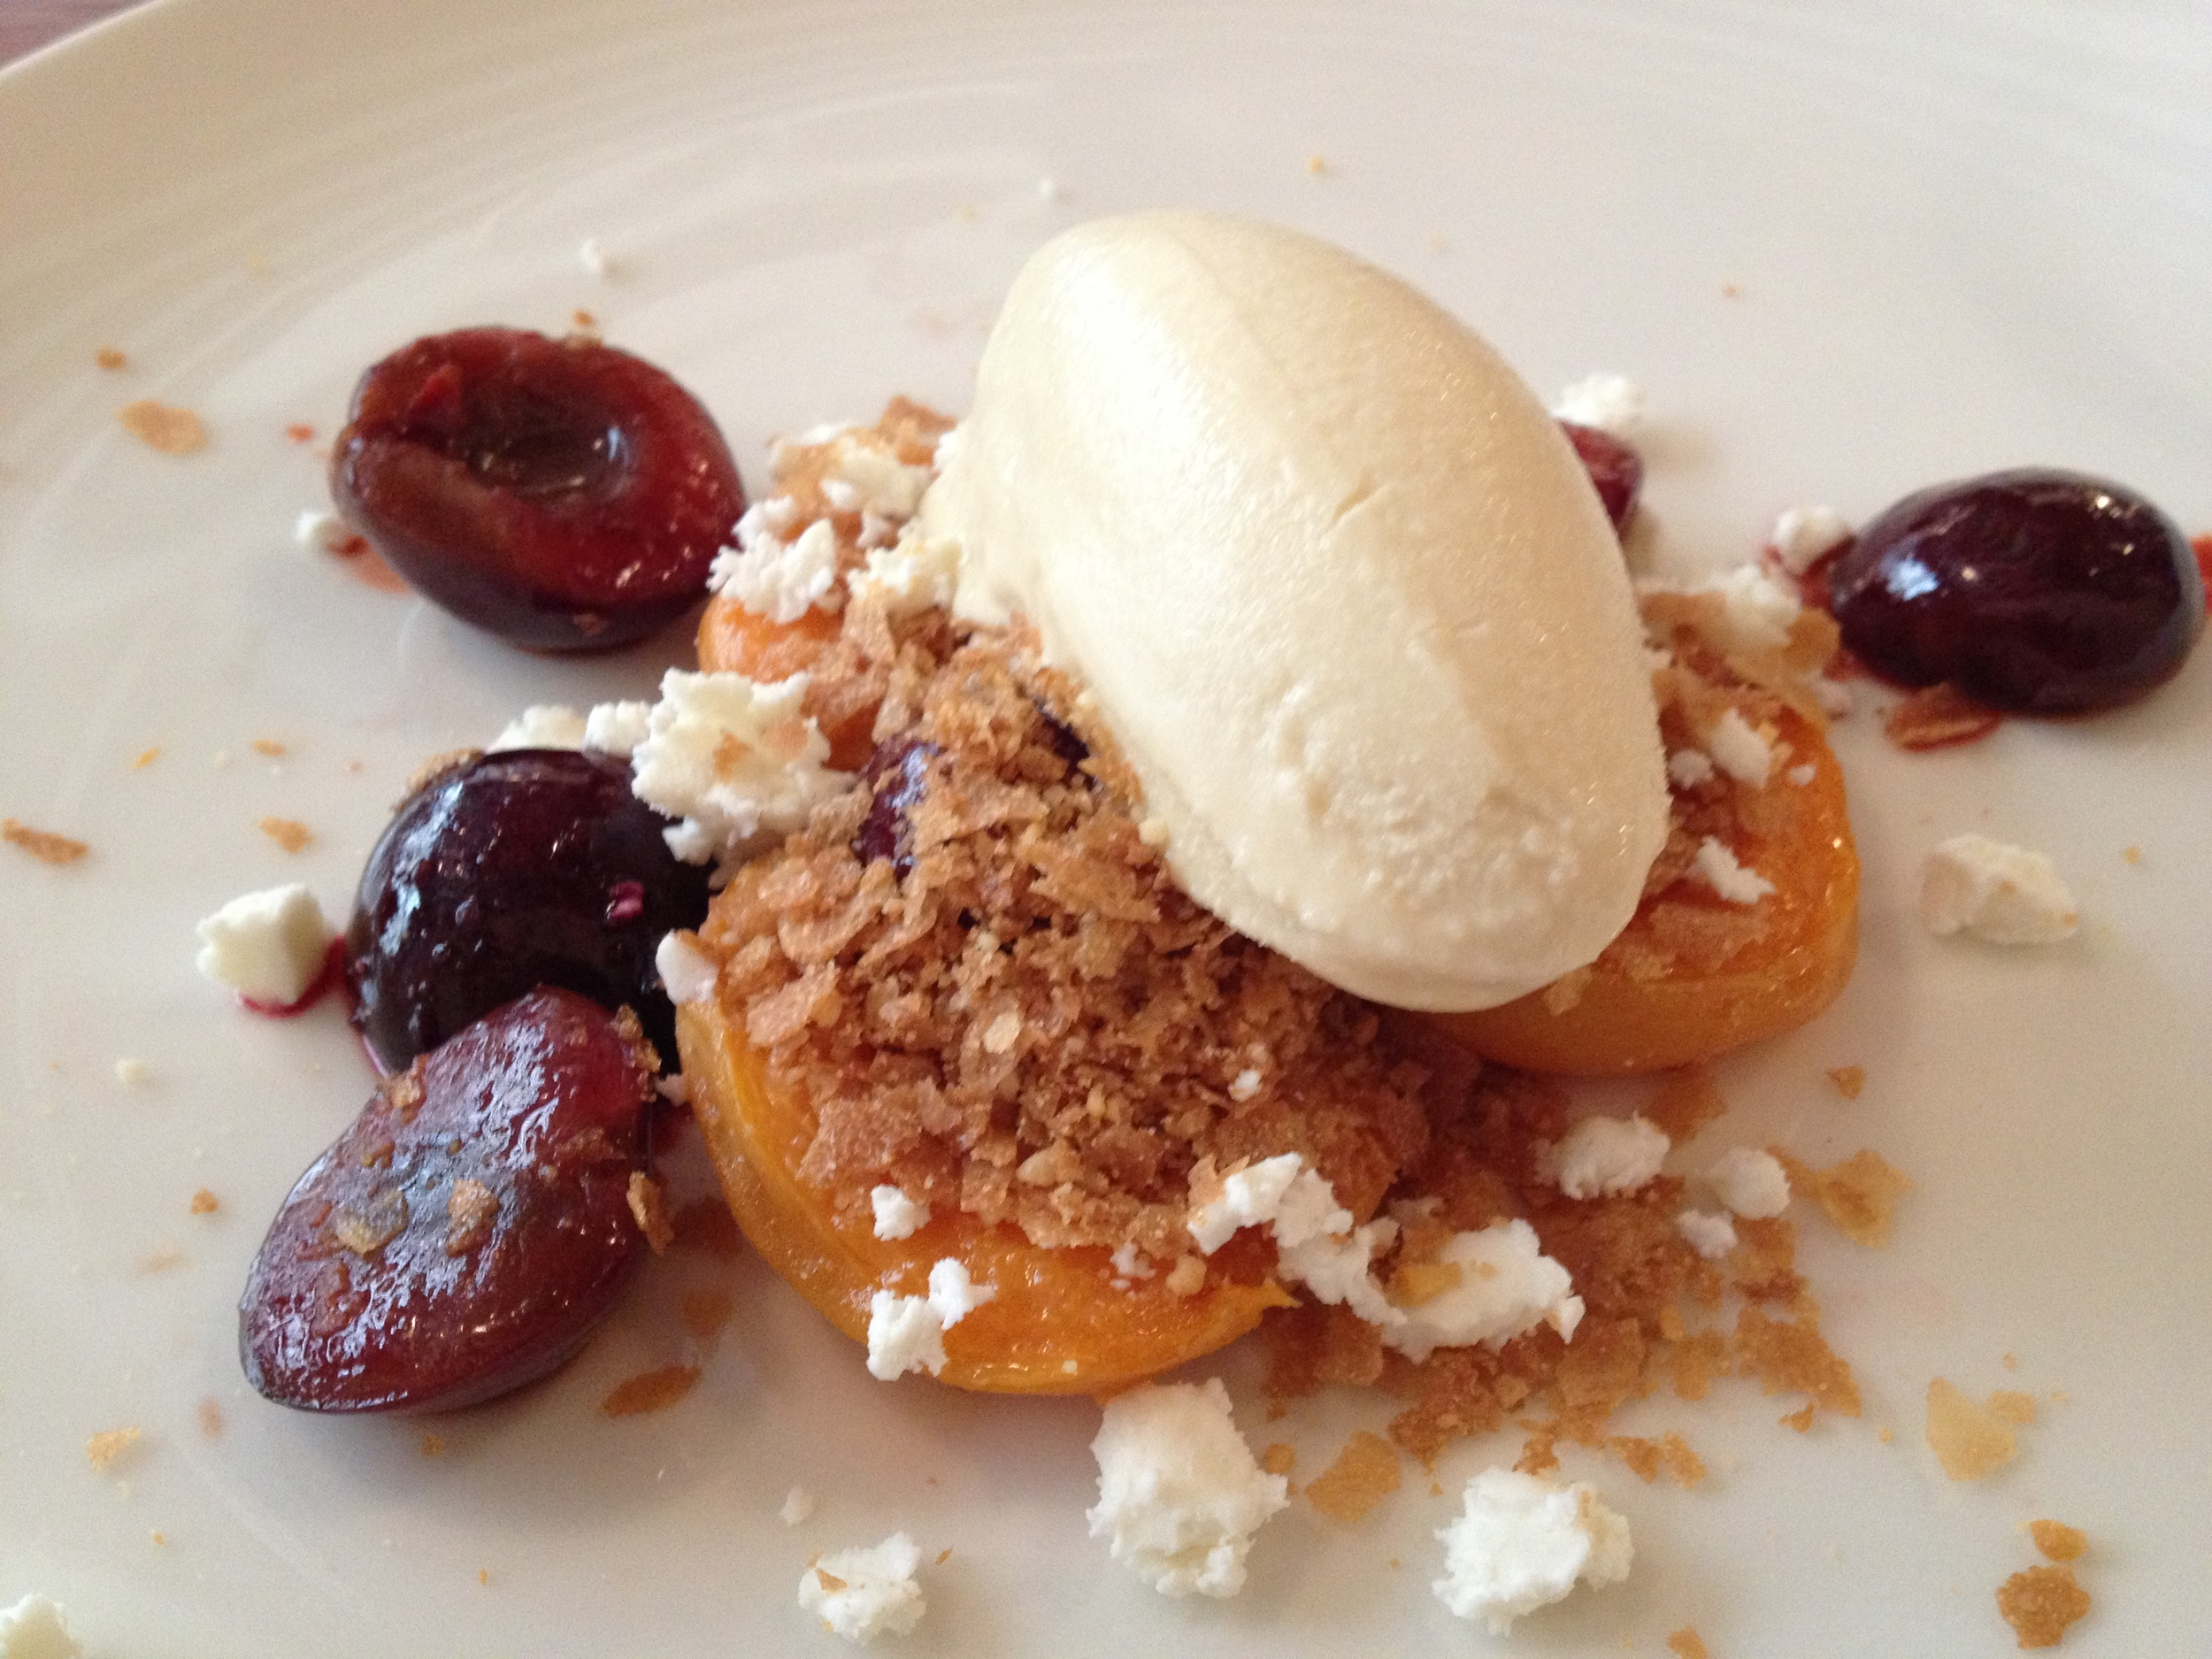 PEACHES, CHERRIES, AND ICE-CREAM